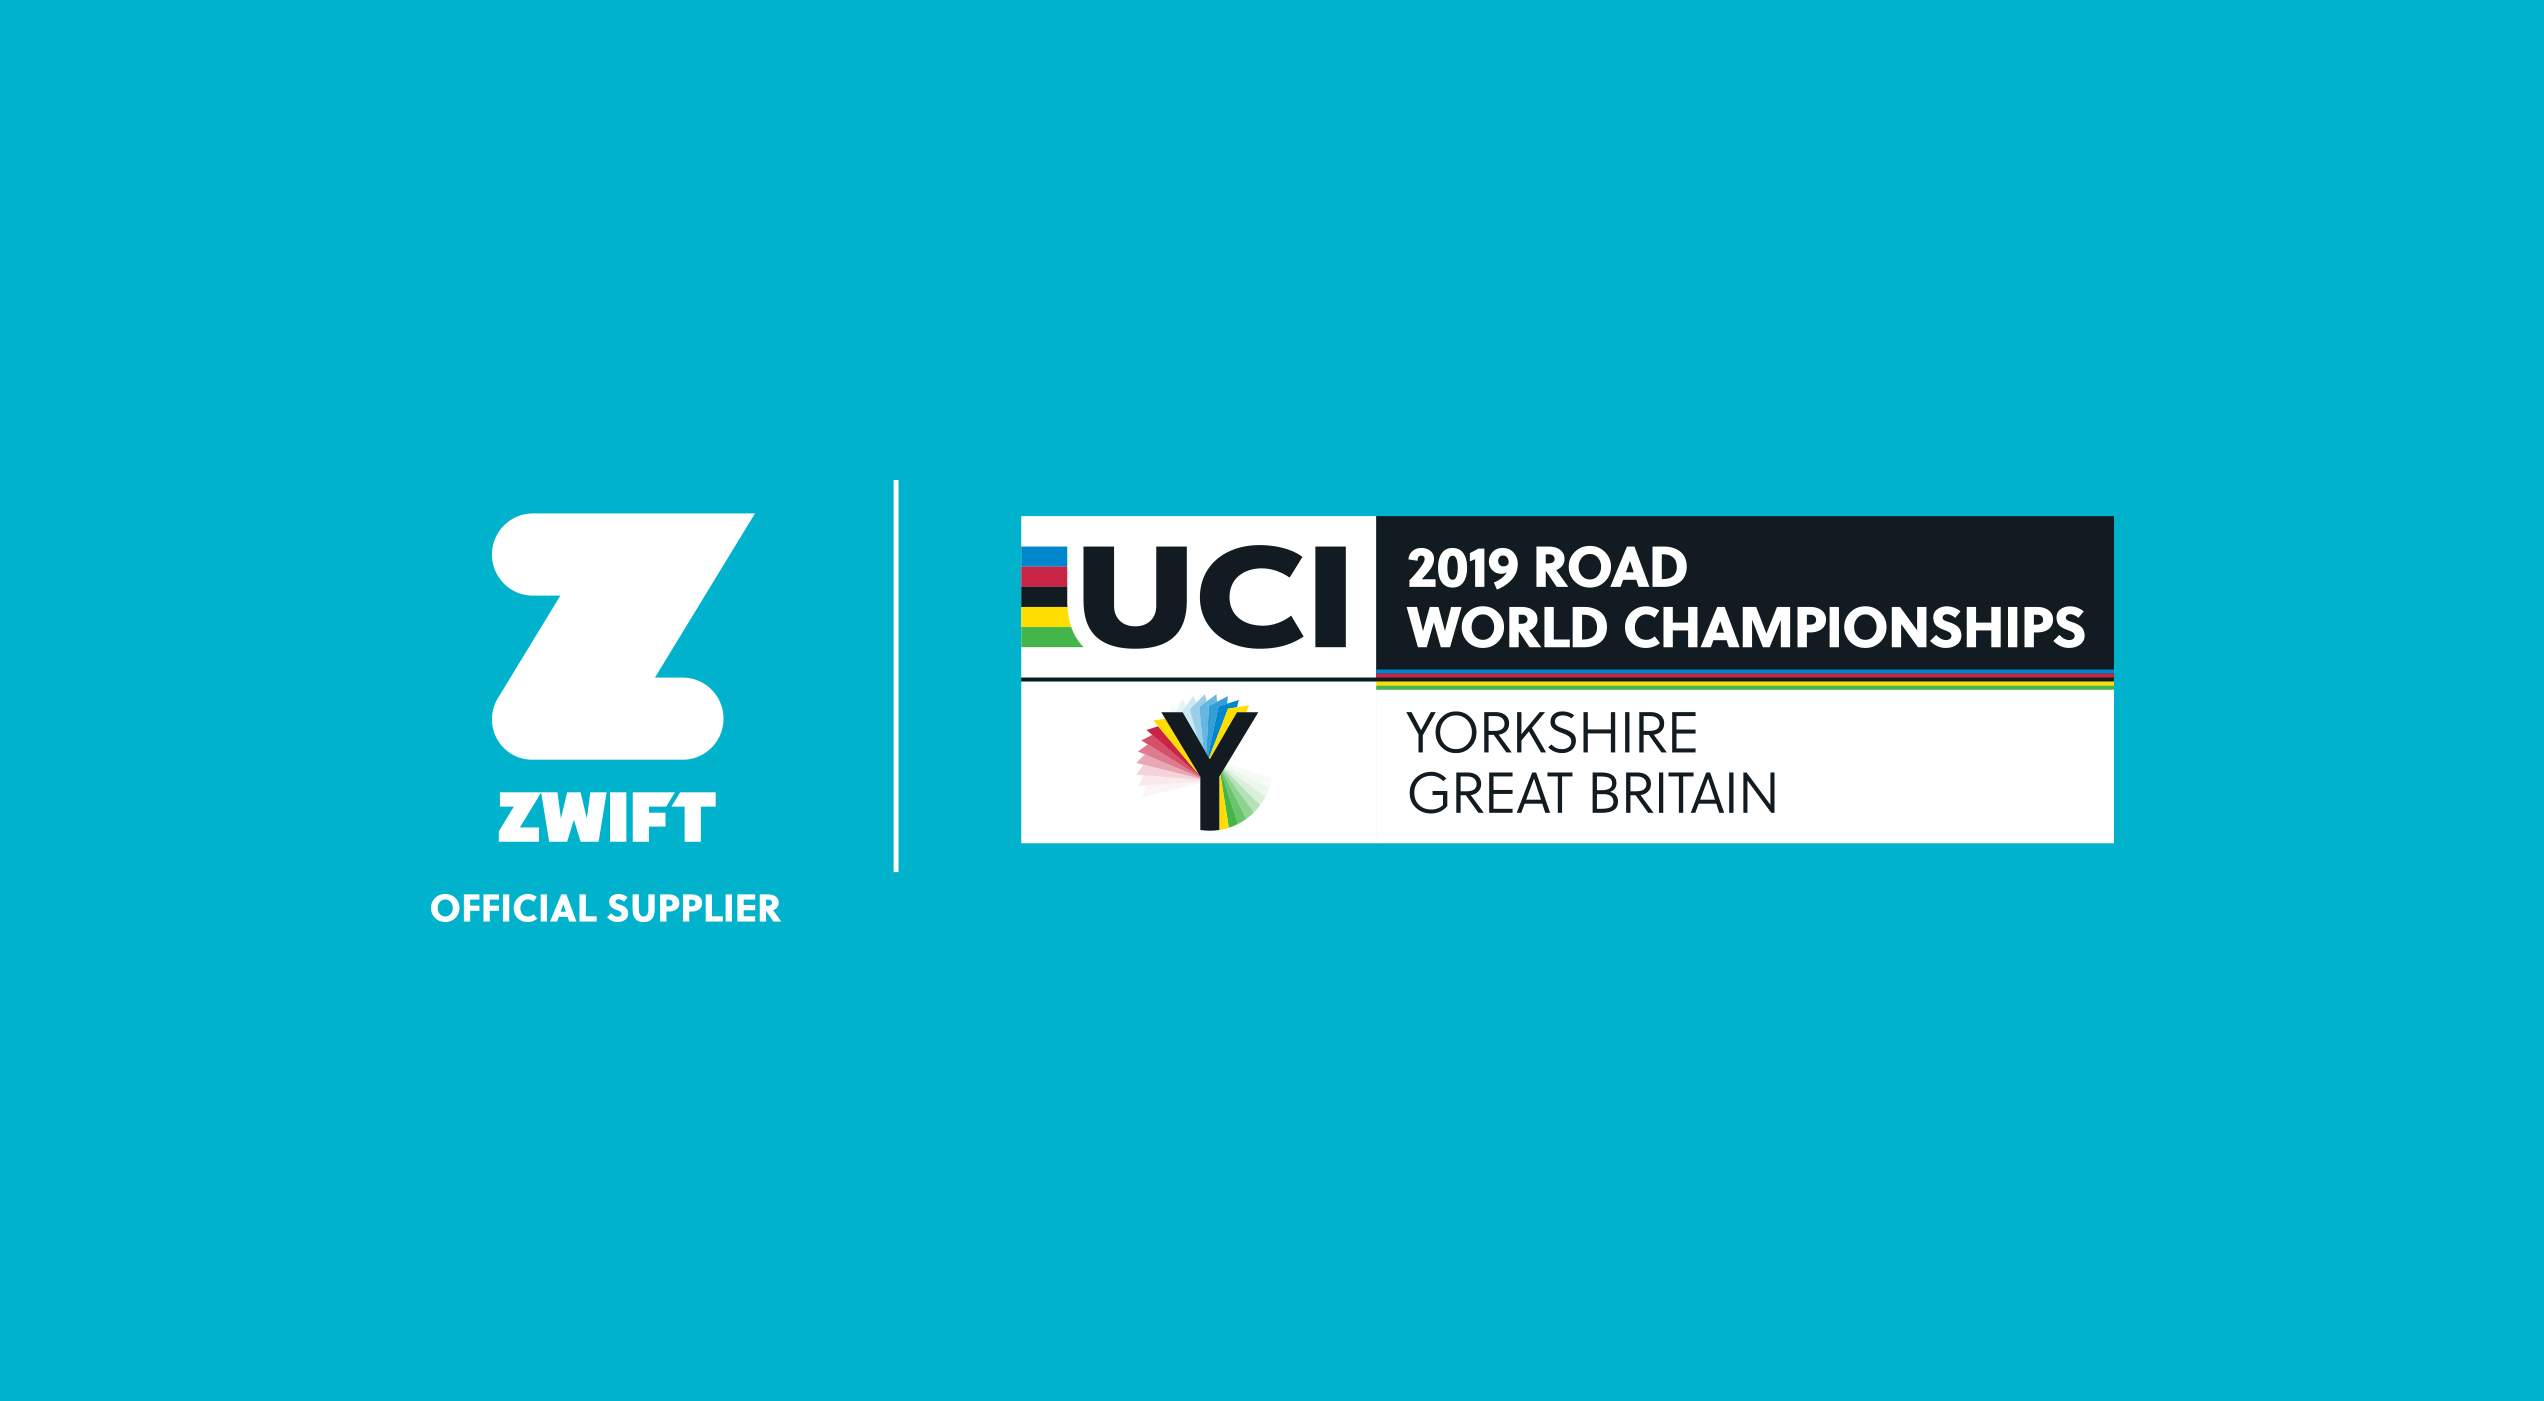 Zwift 2019 UCI Road World Championship course will offer